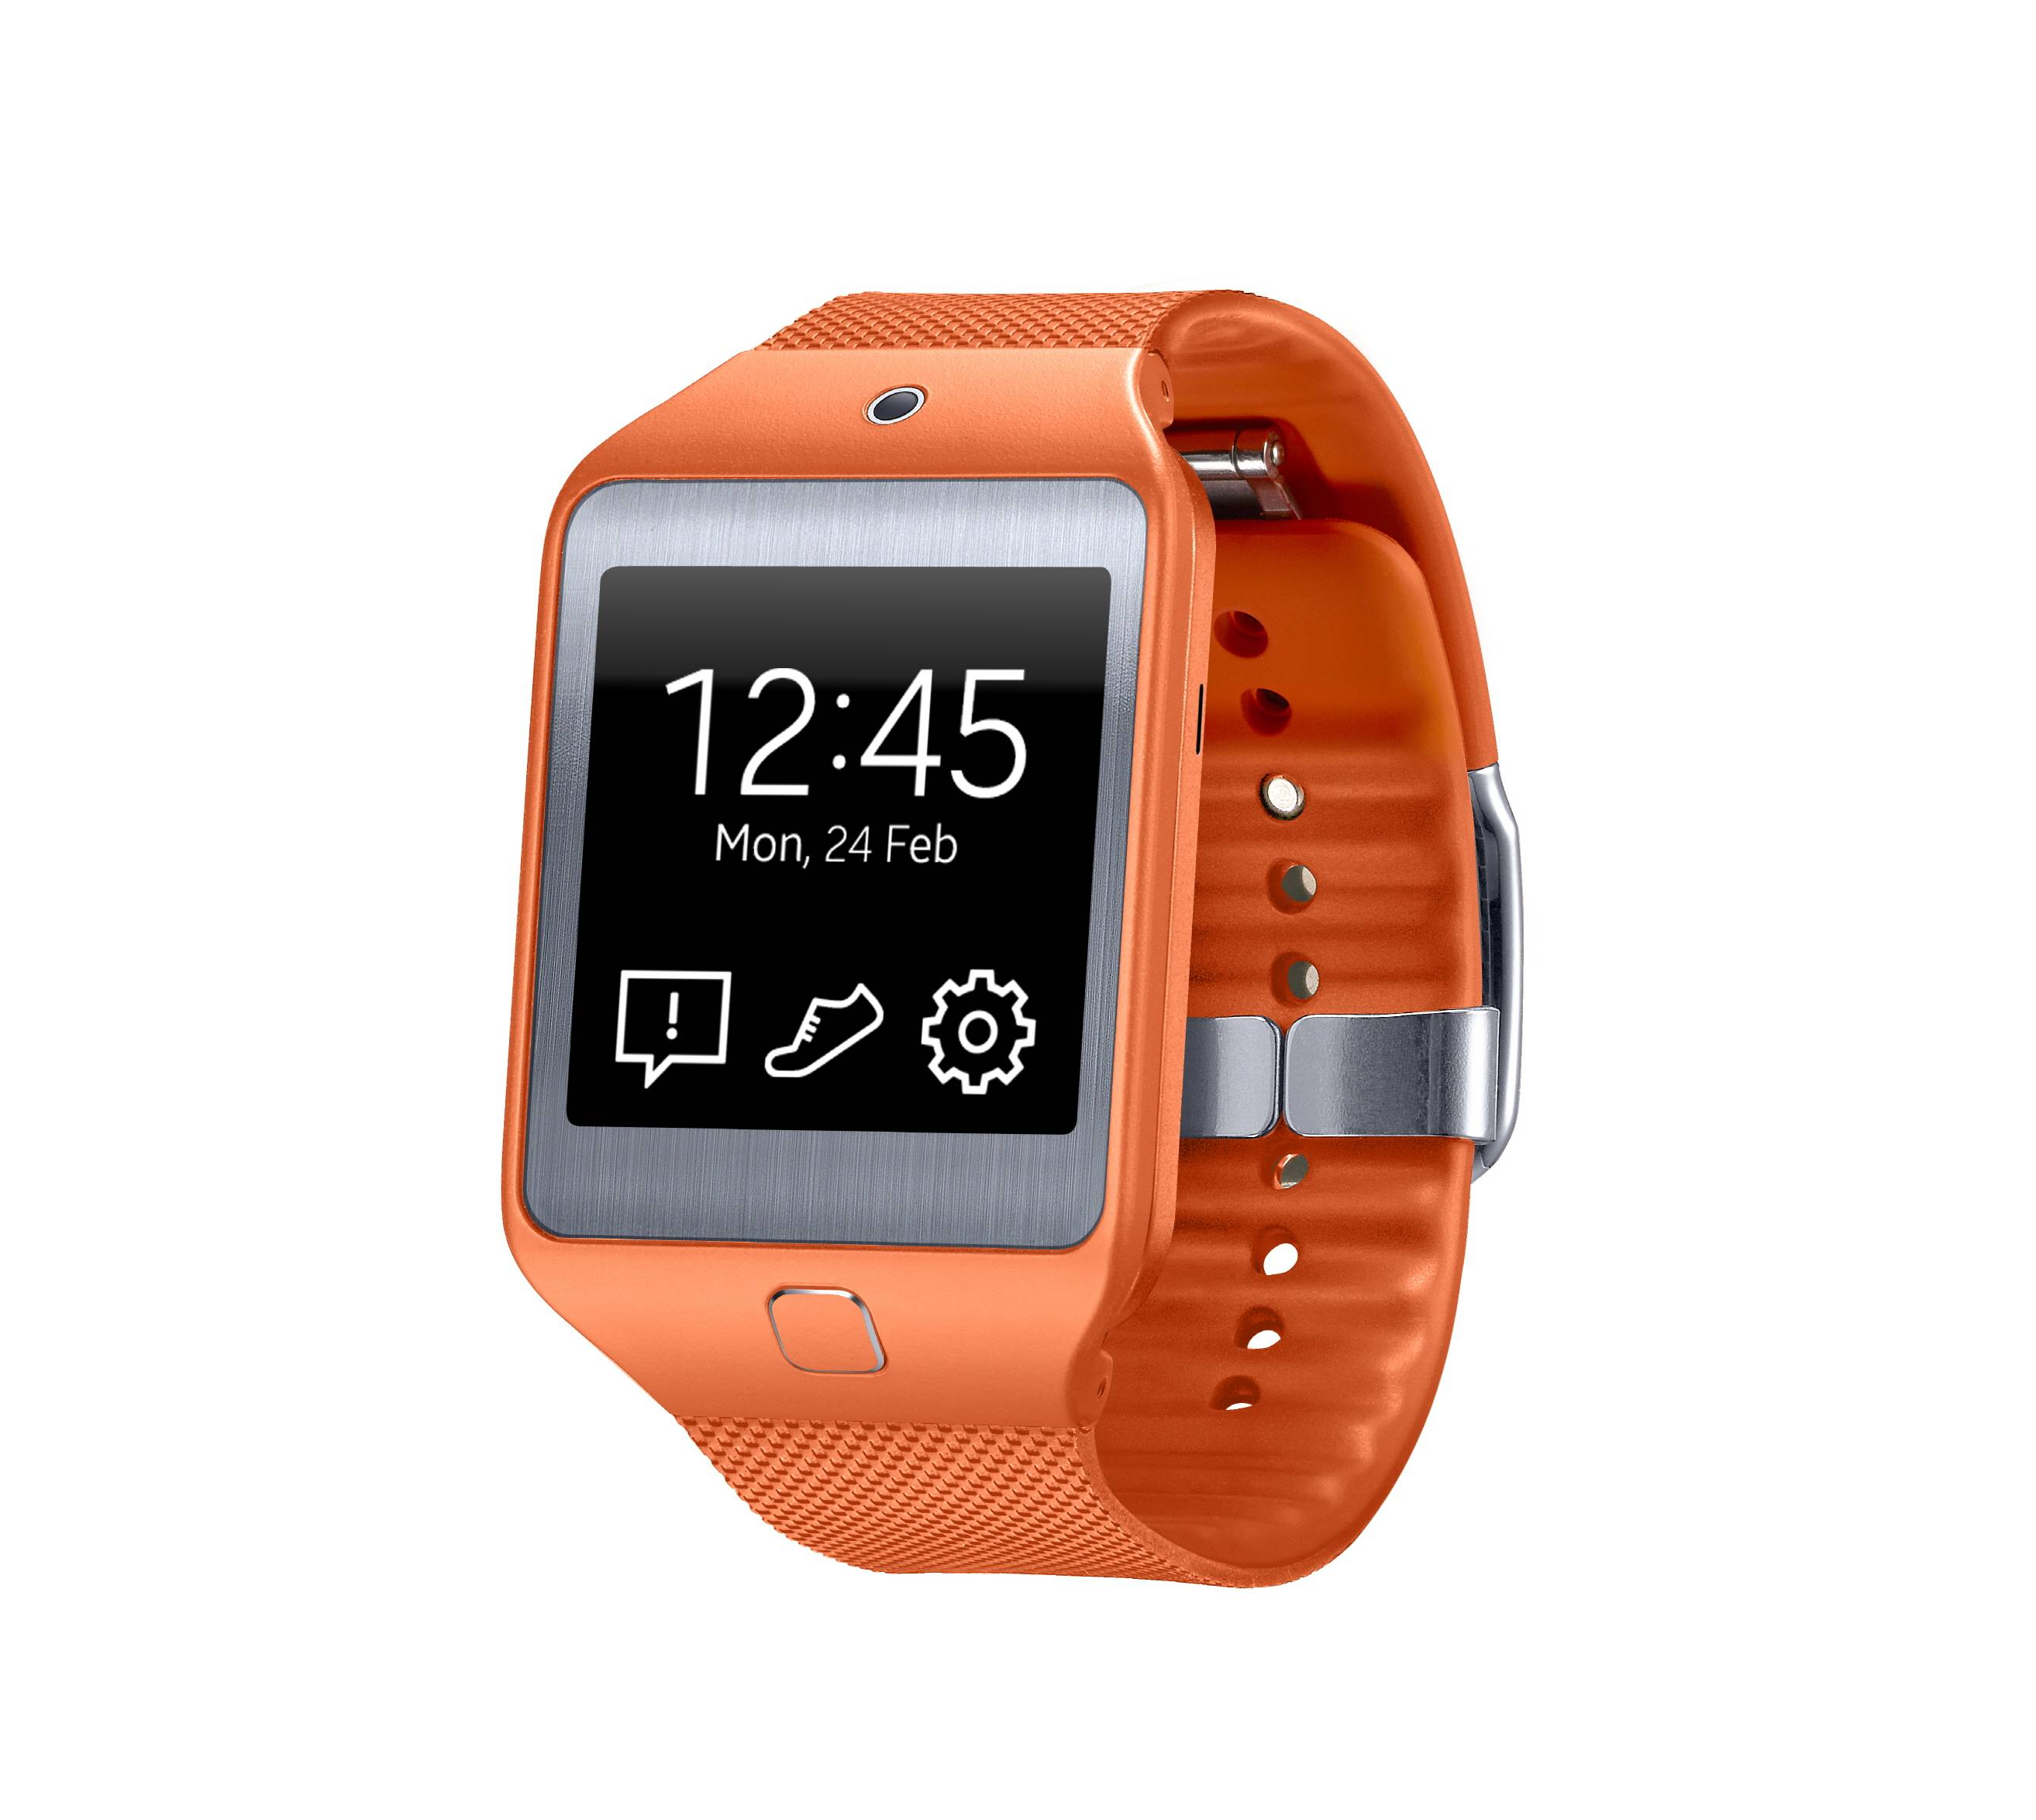 Samsung's Gear 2 Neo, one of two new computerized wristwatches, includes health sensors and related fitness features to give people a reason to buy one, unveiled at the Mobile World Congress in Spain.